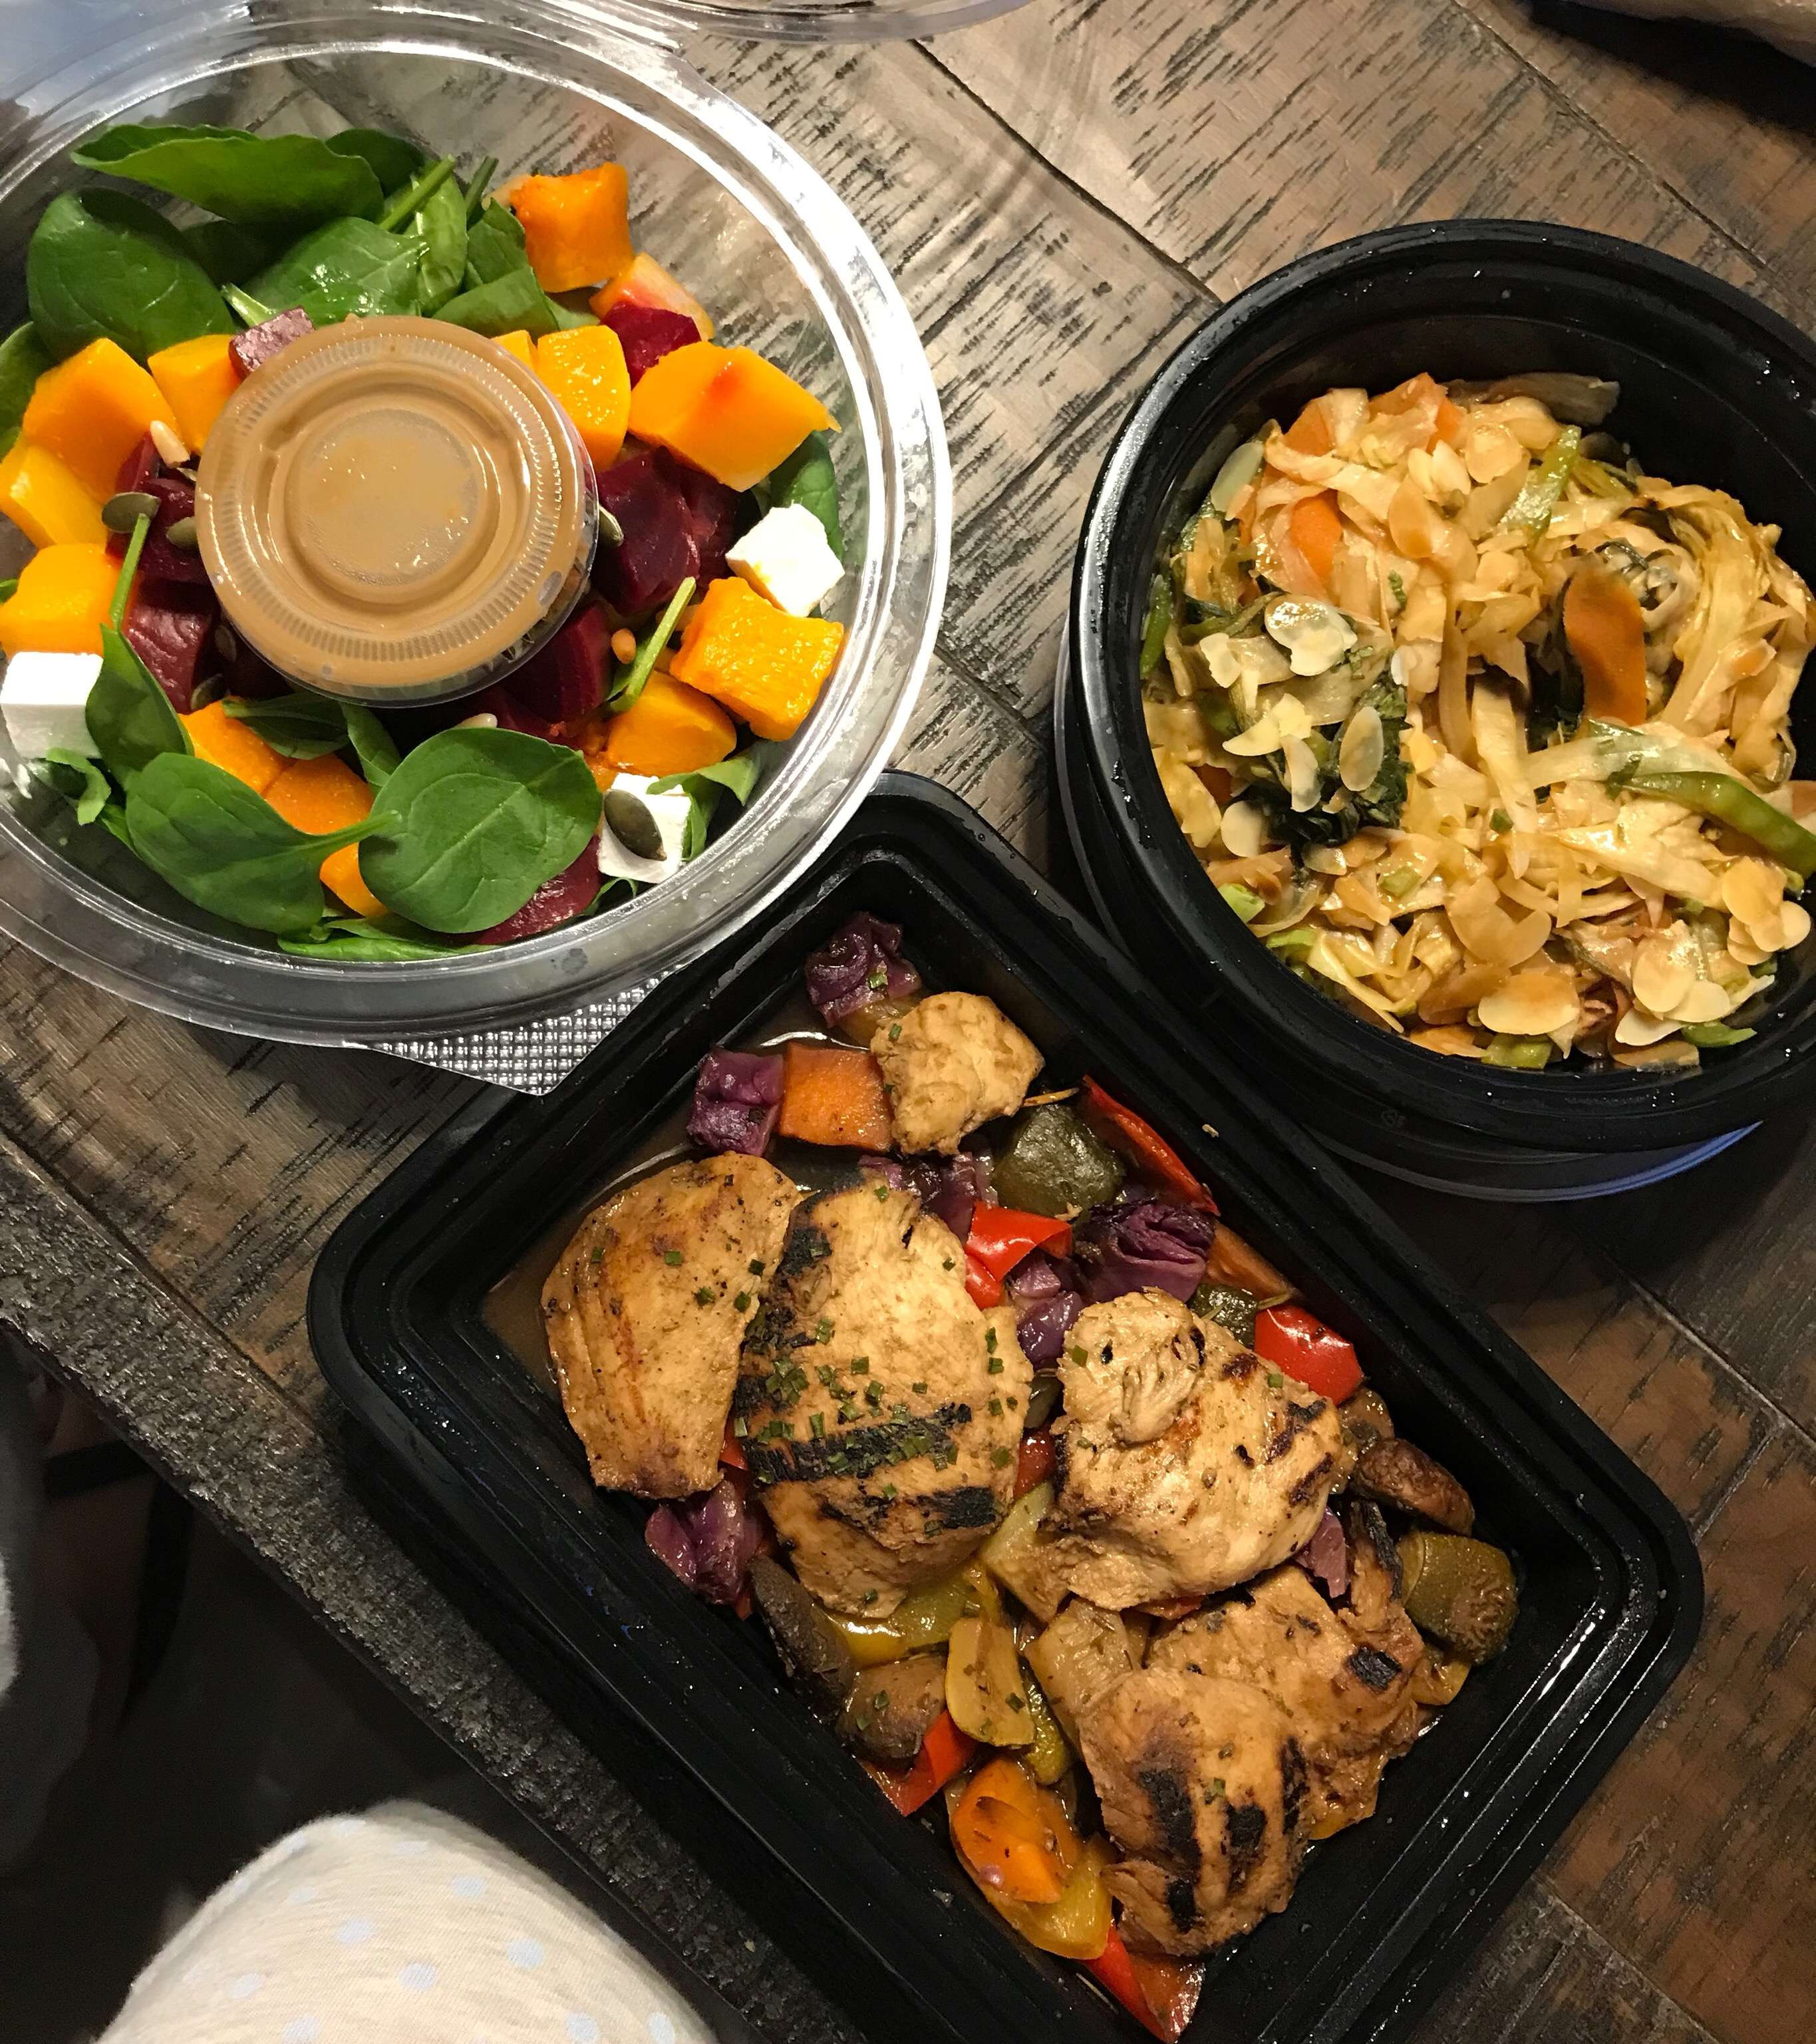 Pumpkin & feta salad - Grilled Chicken and veggies - Japanese Sesame Chicken.